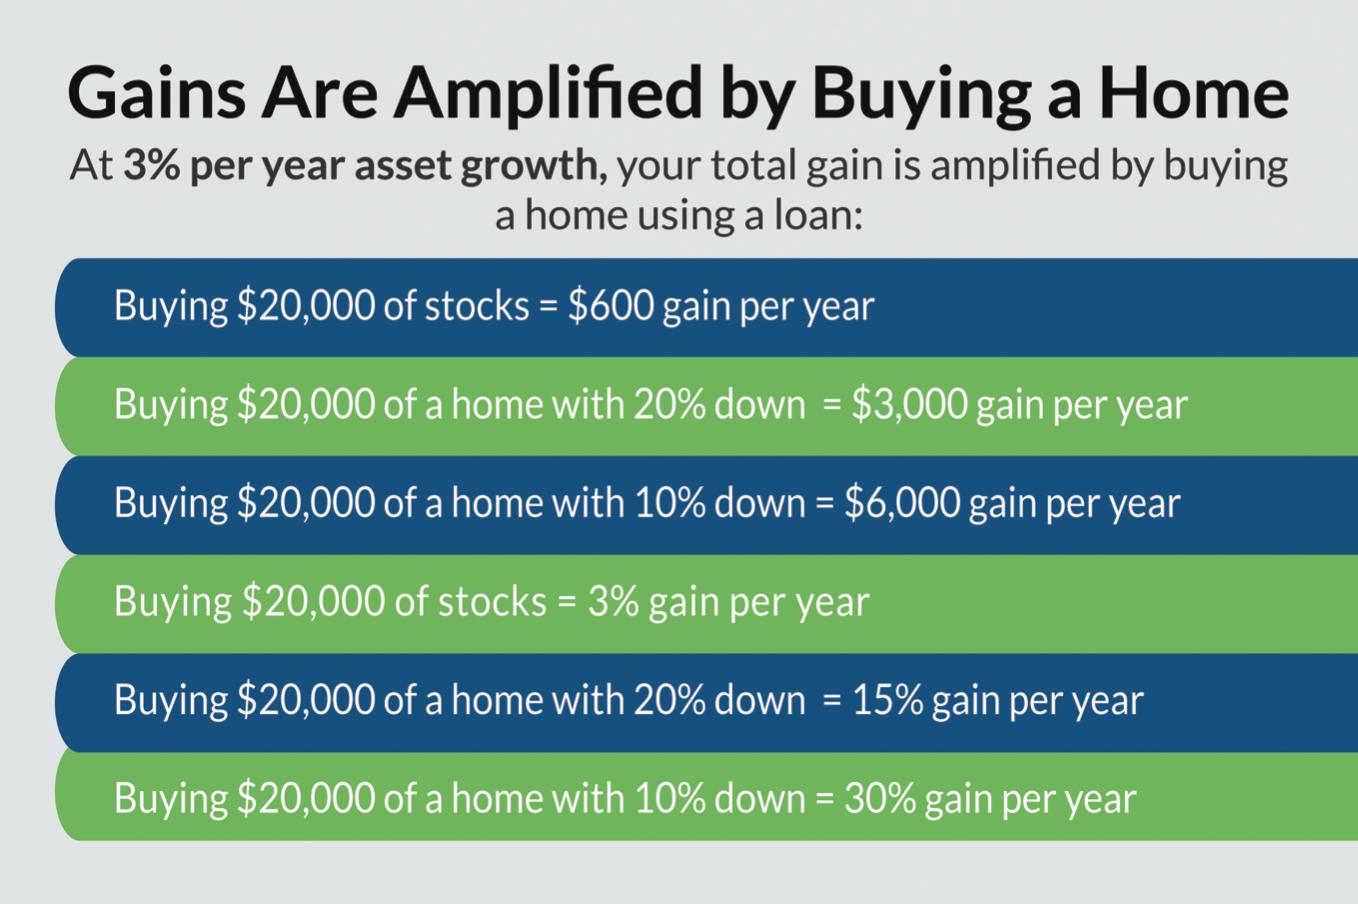 """A graphic with grey background reading """"Gains are amplified by buying a home"""". It shows the money and percentage gains per year using a 3% per year asset growth figure."""